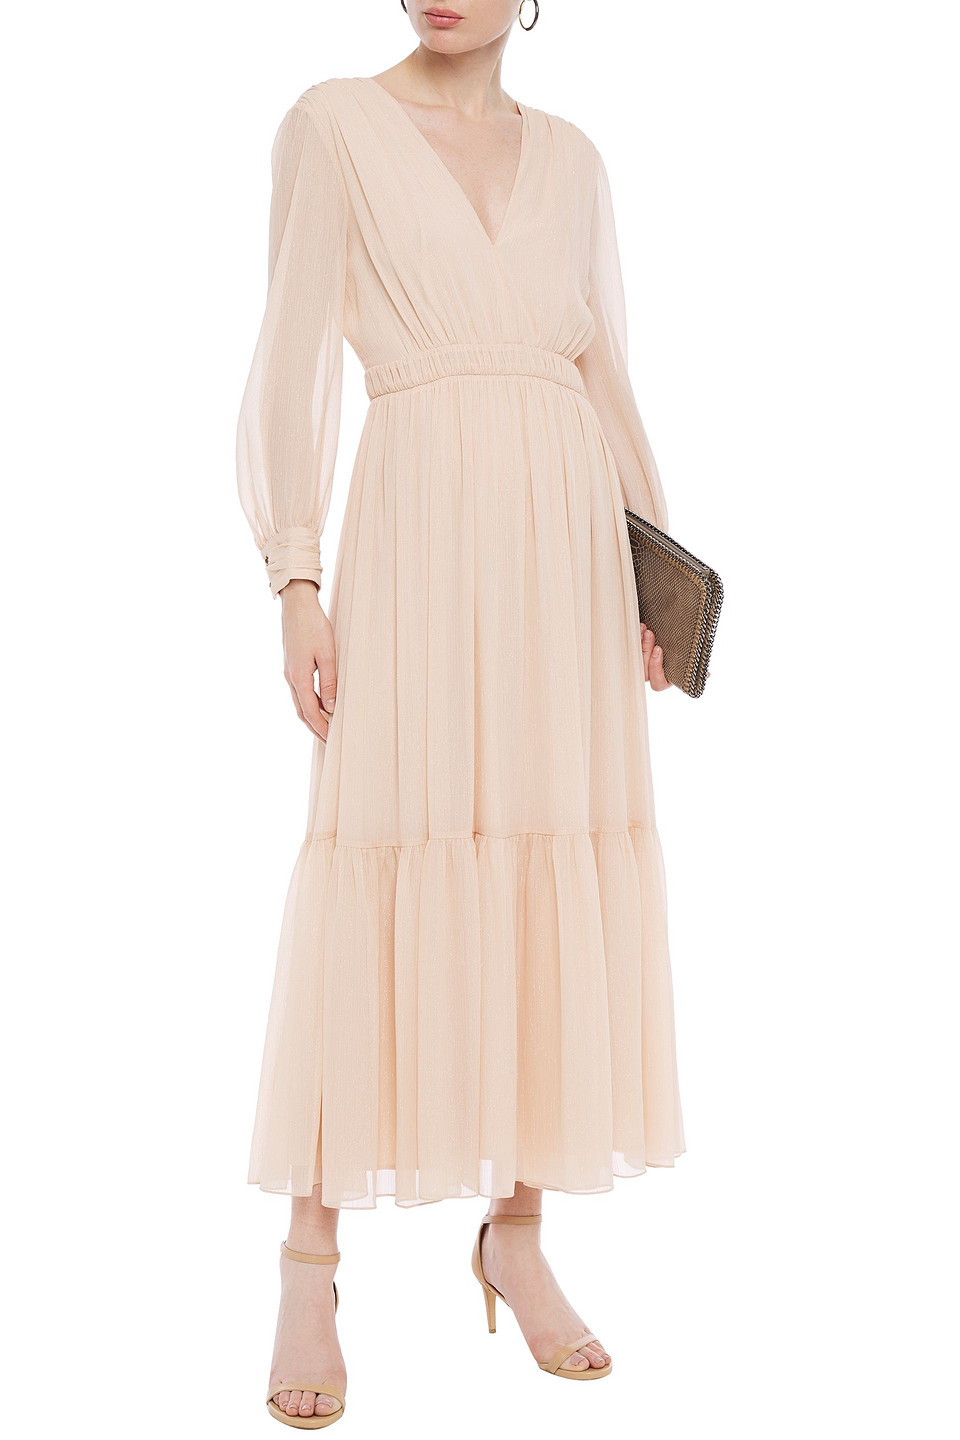 Sandro | Sandro Woman Chaireen Gathered Metallic Georgette Maxi Dress Peach | Clouty